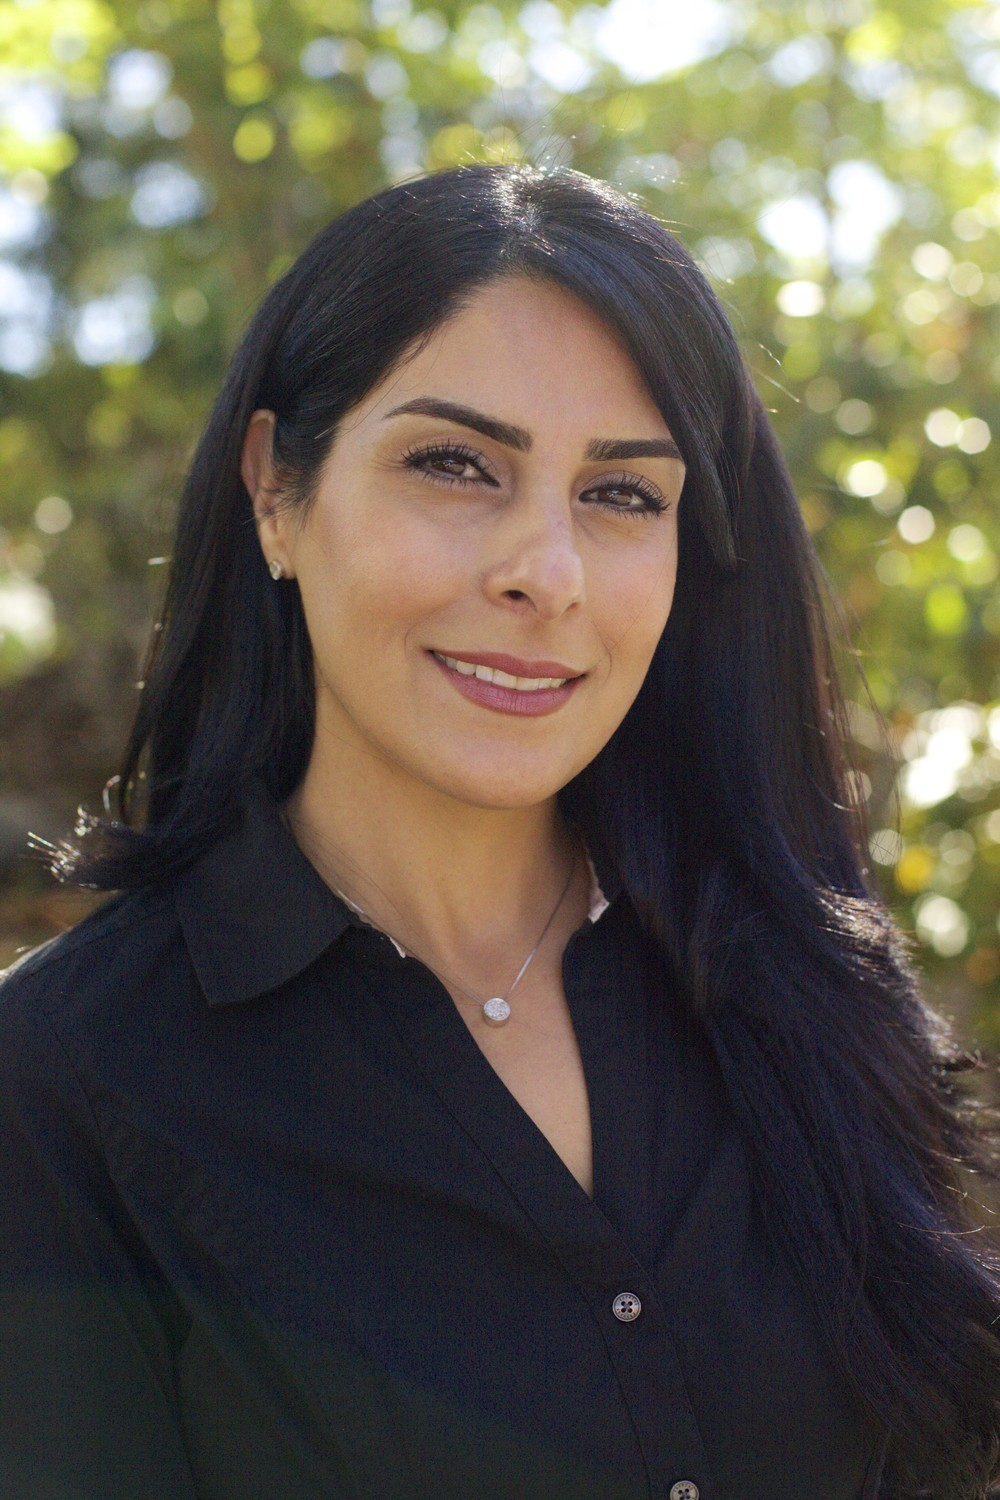 Shadi Shirazi, PsyD, LIcensed Psychologist   ∙ Children, Adolescents & Adults  ∙  Neuro-psych Testing ∙ Psychoeducation ∙ Social-emotional testing ∙ Autism testing ∙ College accommodation testing ∙ Academic accommodation and IEP related testing ∙ Personality testing ∙ Testing to facilitate therapy by helping with treatment planning